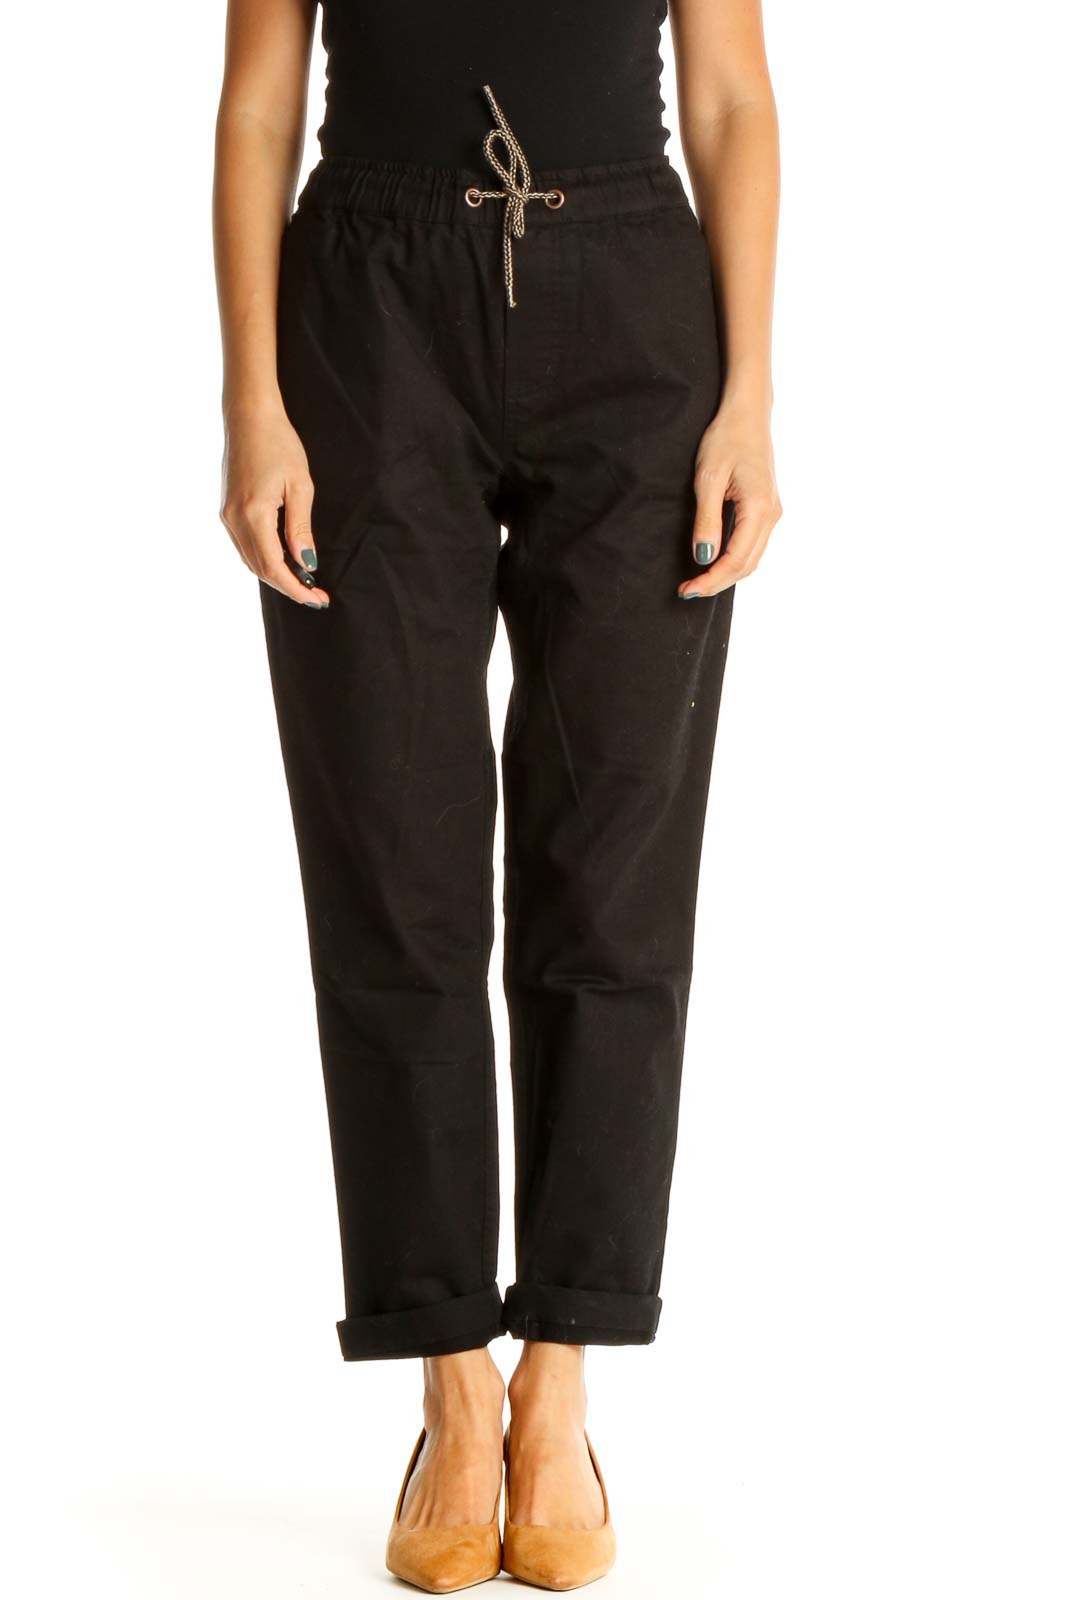 Black Solid Casual Cargos Pants Front